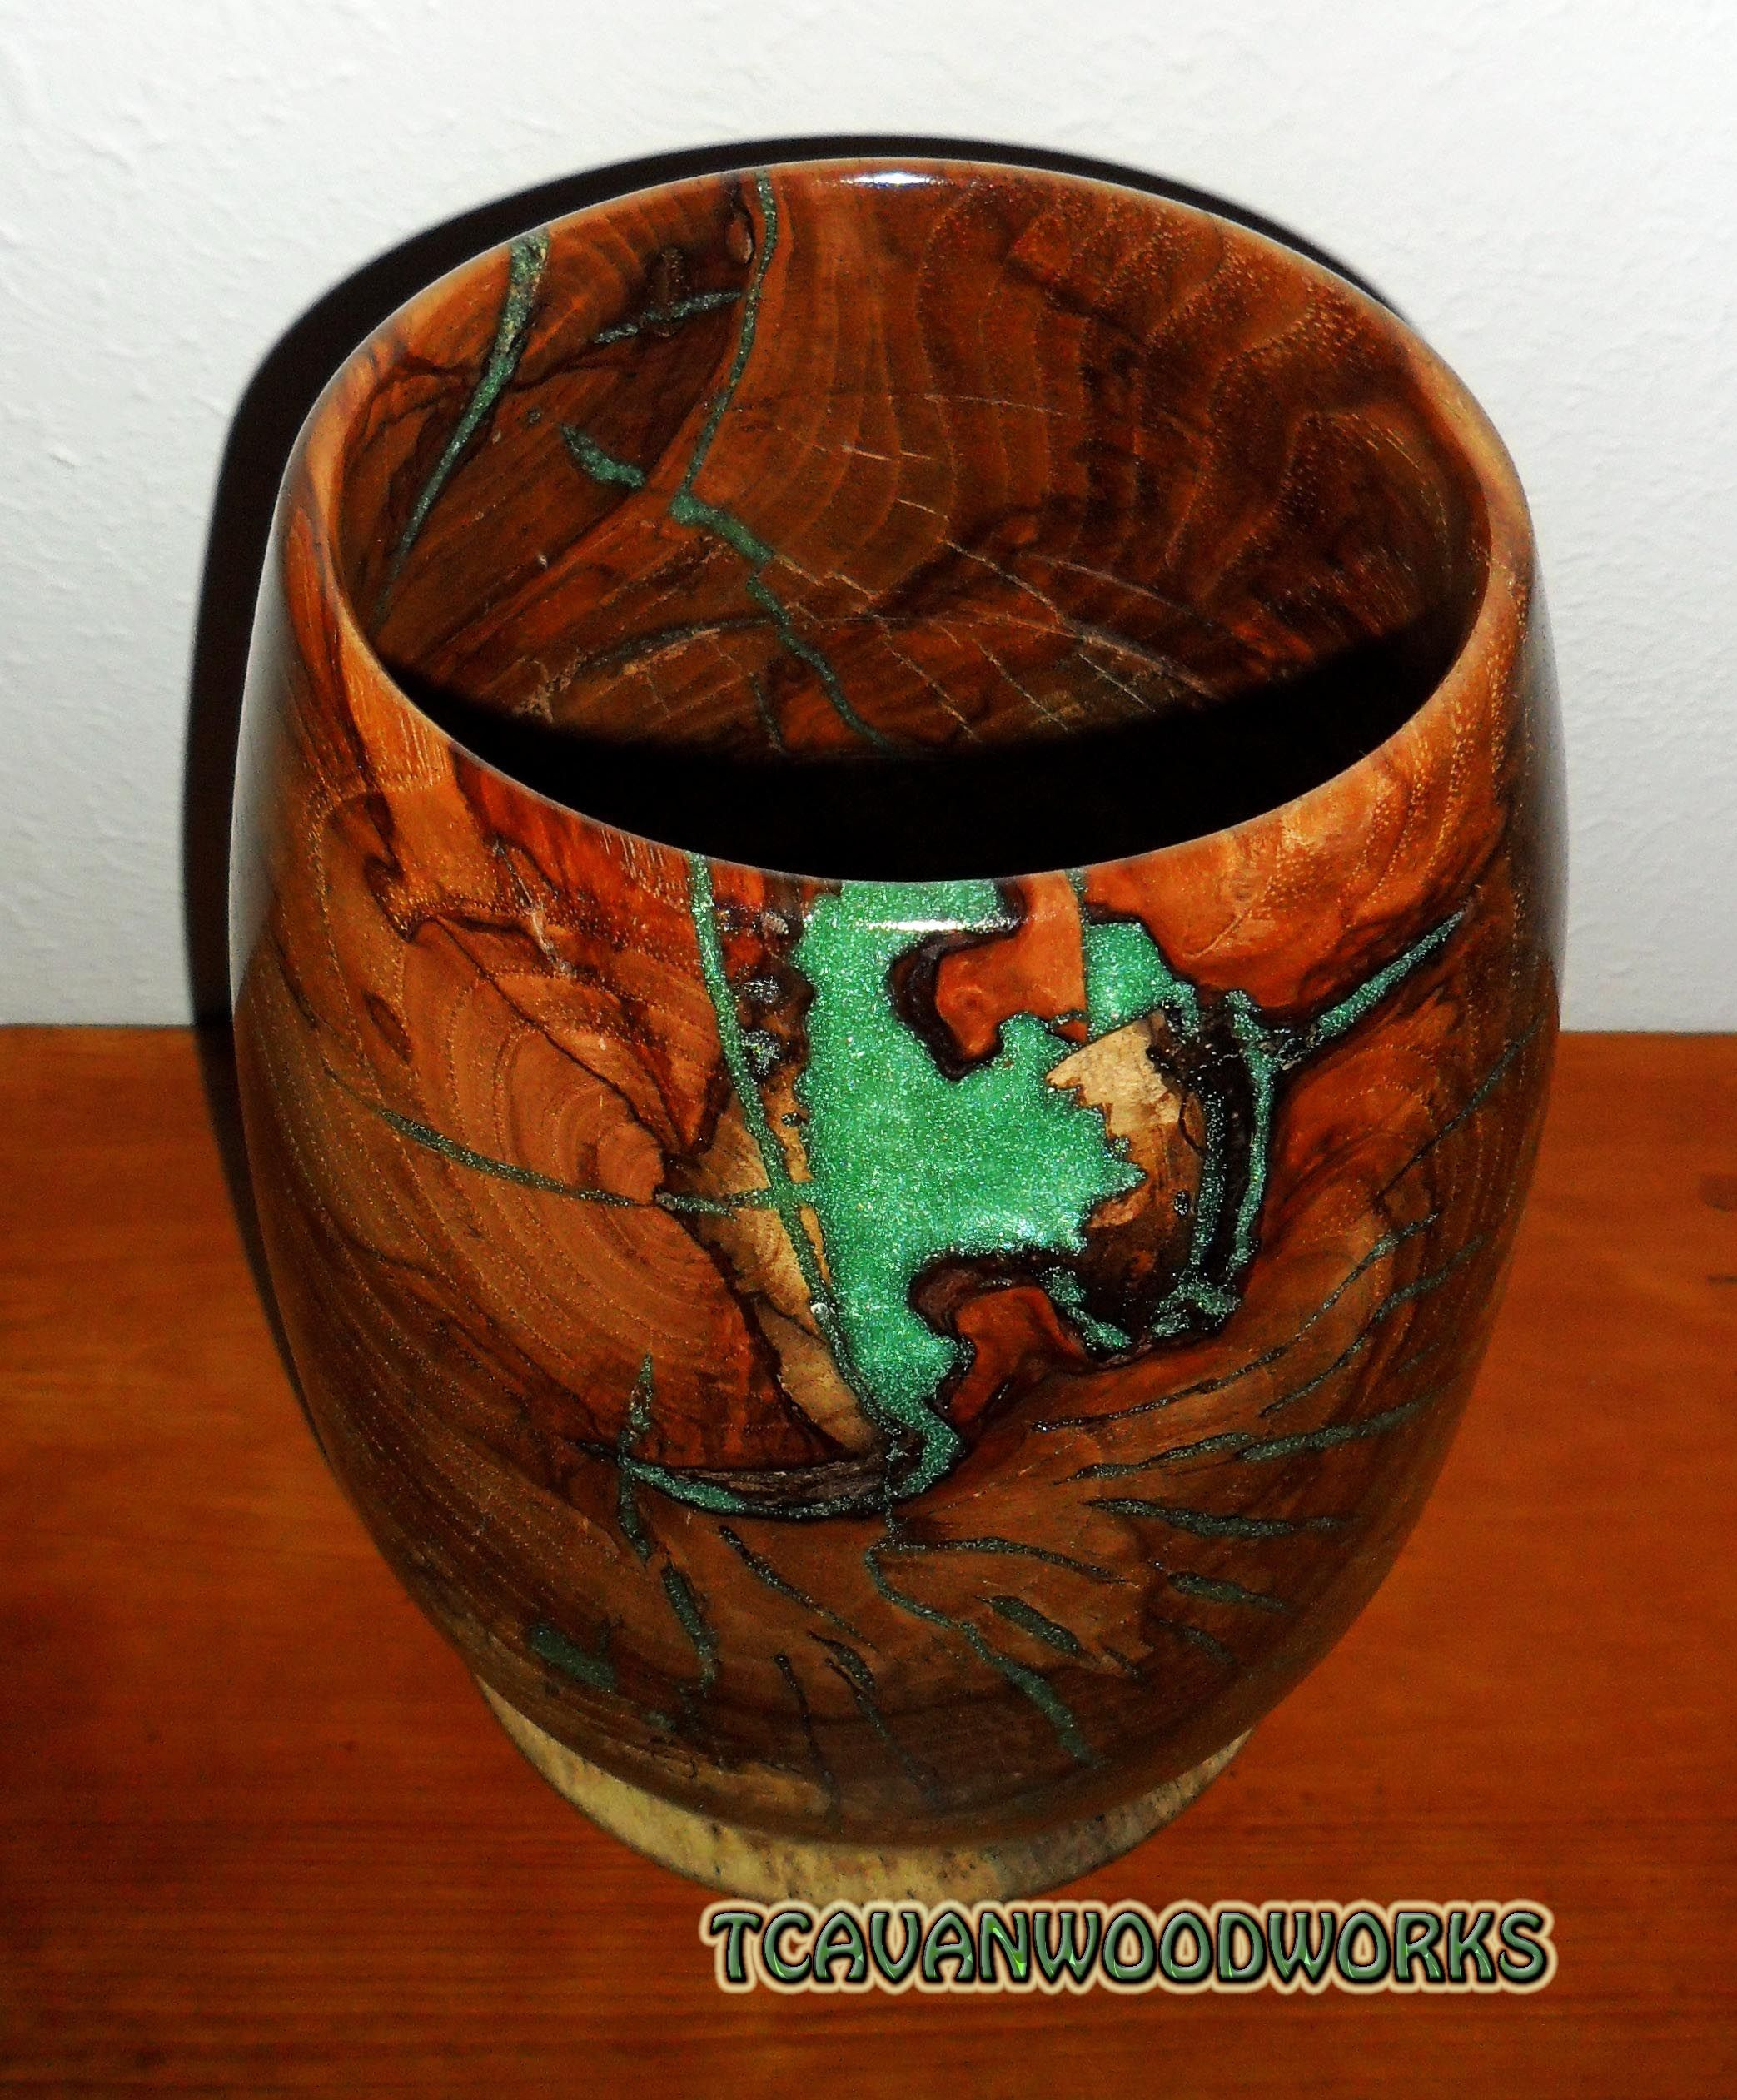 Wood Vessel Inlaid With Jade Green Resin Resin Inlaid